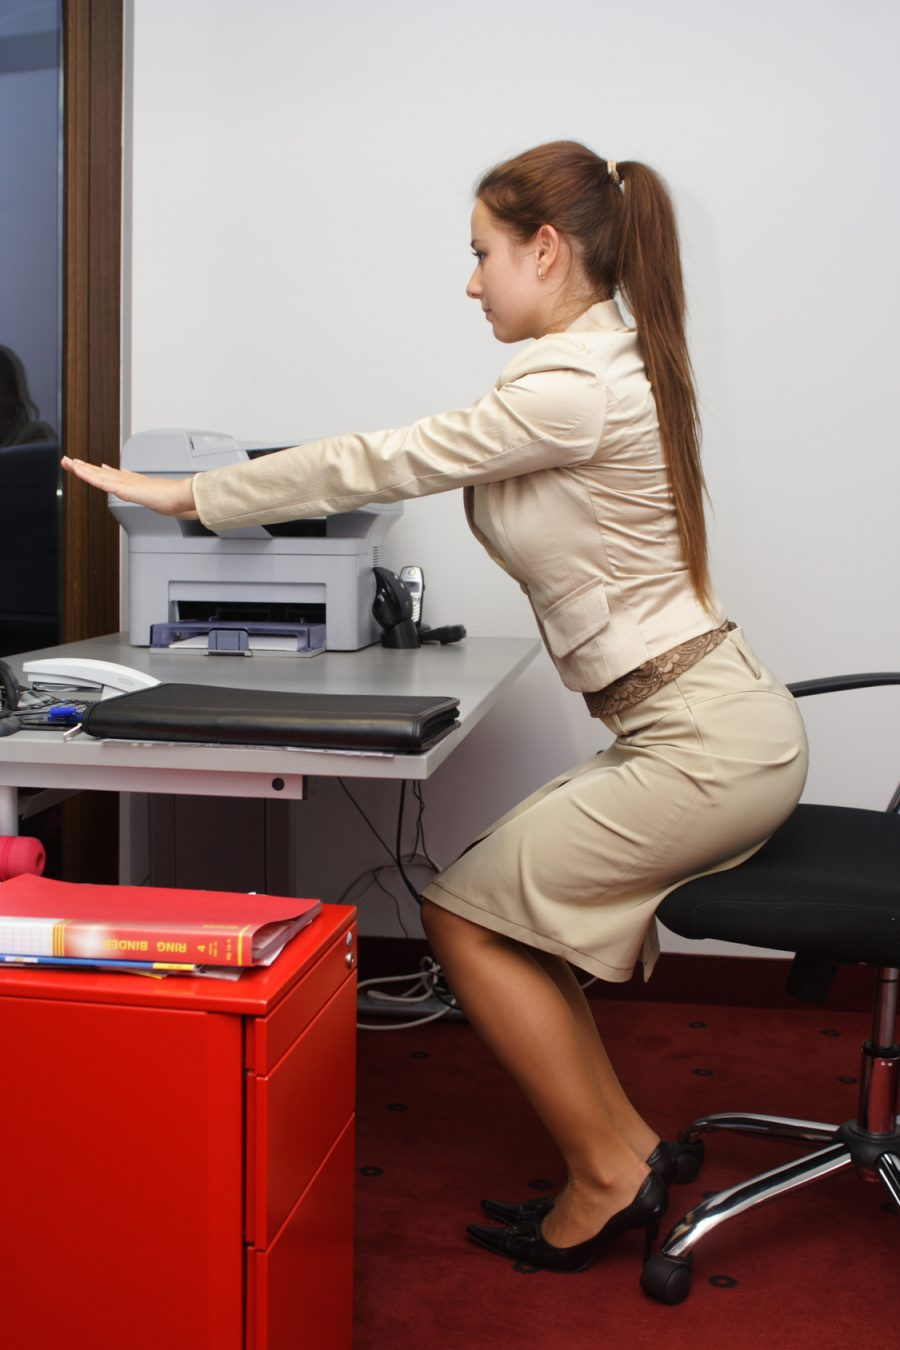 Exercise at Your Office